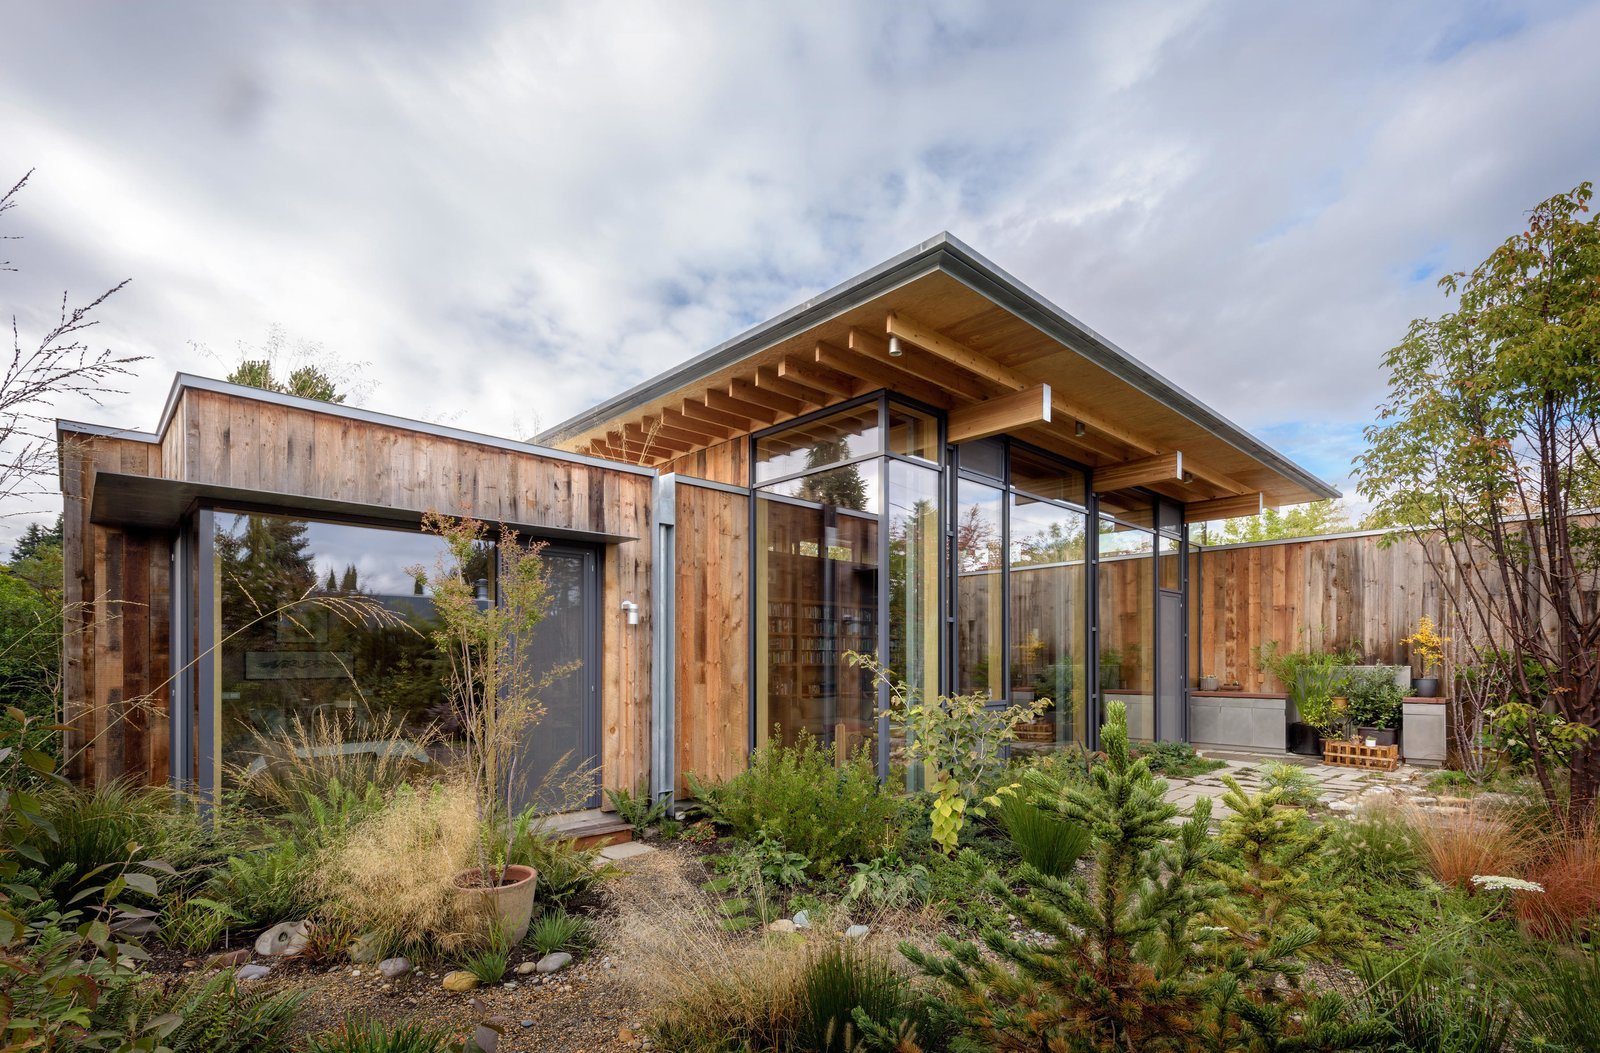 Exterior, House Building Type, and Wood Siding Material City Cabin | Olson Kundig  Photo 2 of 13 in Immersed in Nature, This City Cabin Targets Net-Zero Energy from City Cabin